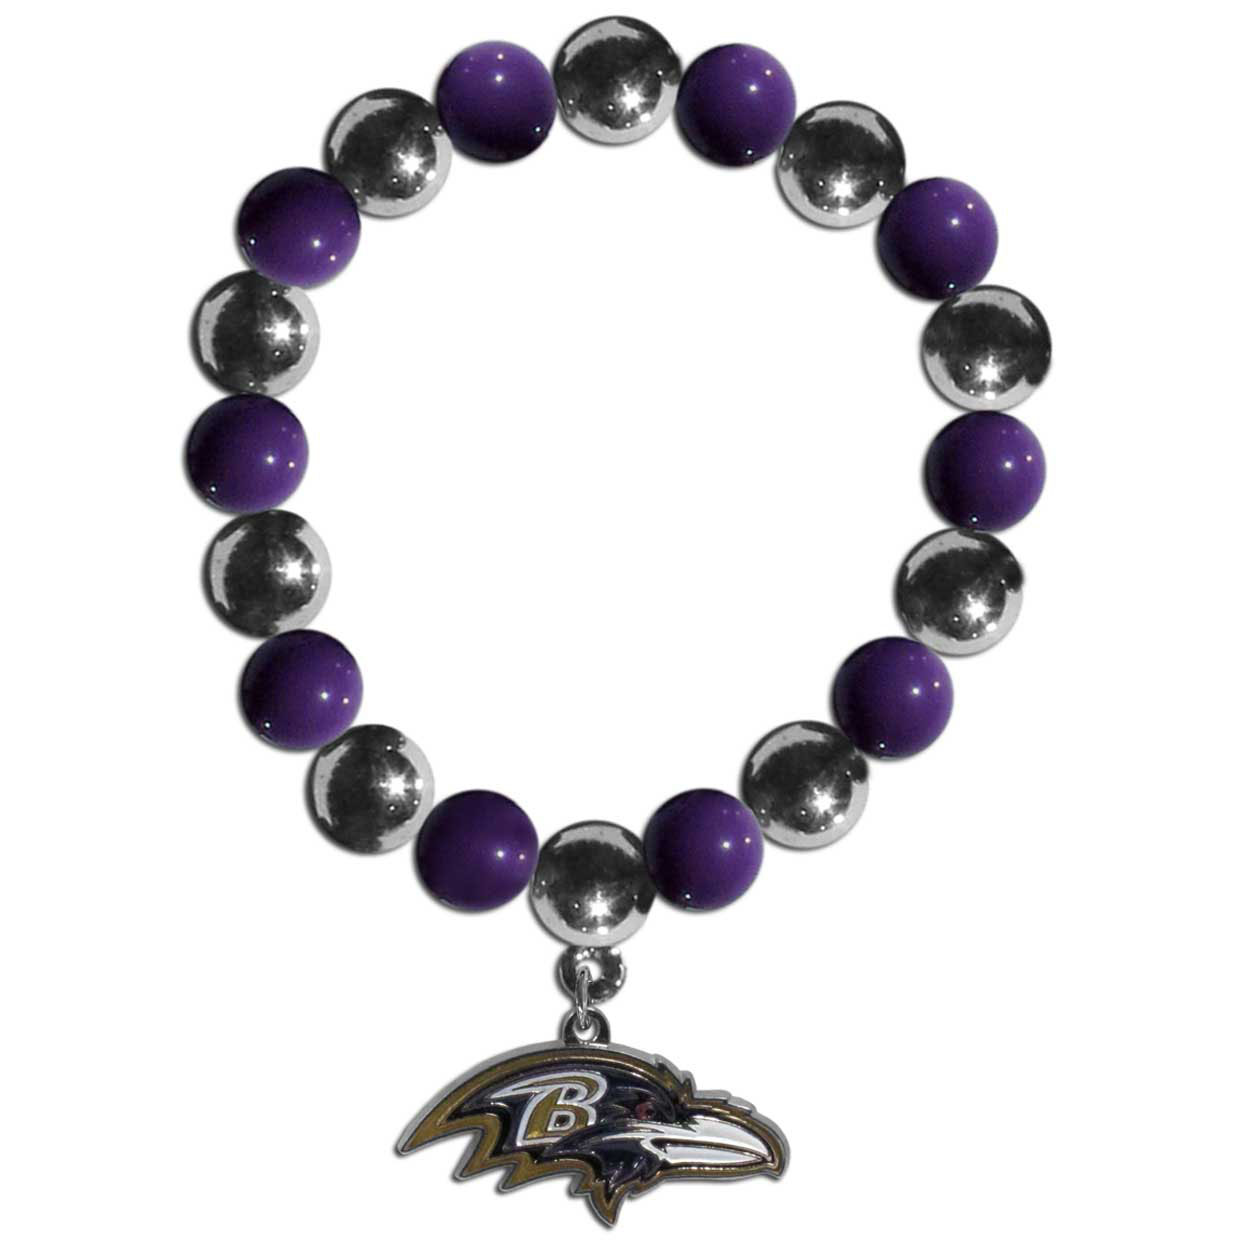 Baltimore Ravens Chrome Bead Bracelet - Flash your Baltimore Ravens spirit with this bright stretch bracelet. This new bracelet features alternating charm & team beads on stretch cord with a nickel-free enameled chrome team charm. This bracelet adds the perfect pop of color to your game day accessories.